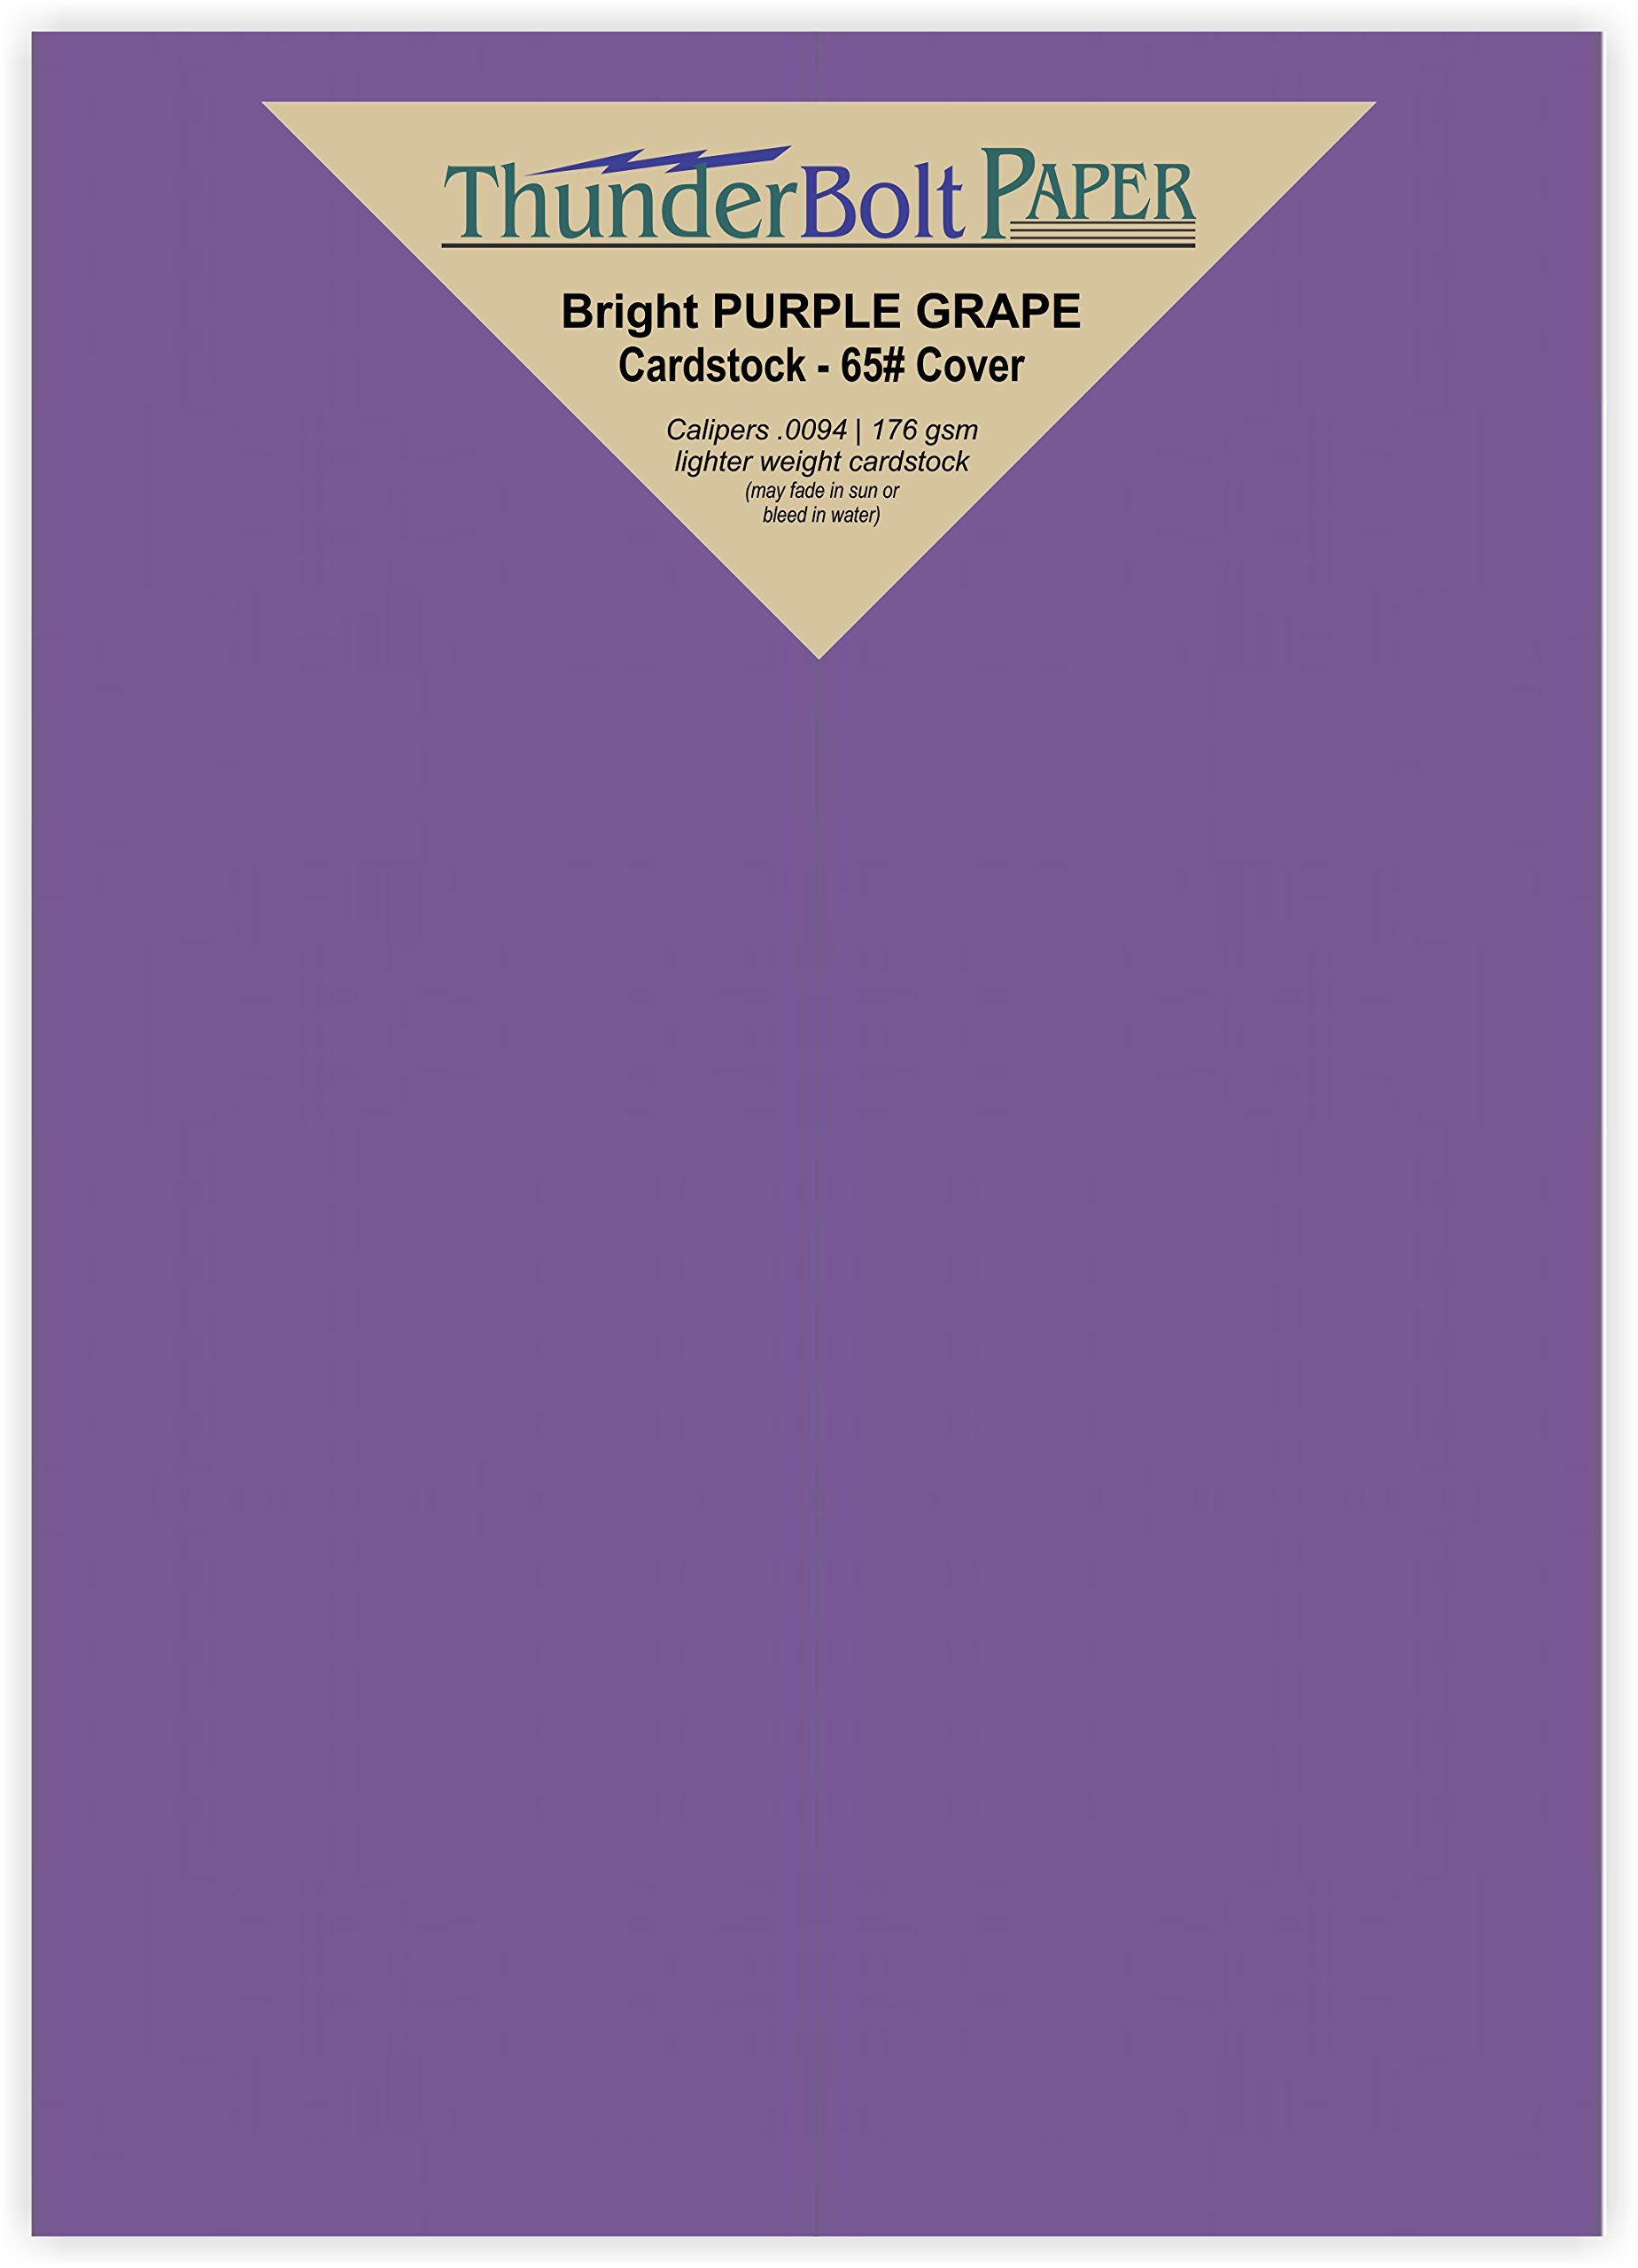 50 Bright Purple Grape 65# Cardstock Paper 5'' X 7'' (5X7 Inches) Photo|Card|Frame Size - 65Cover/45Bond Light Weight Card Stock - Bright Printable Smooth Paper Surface